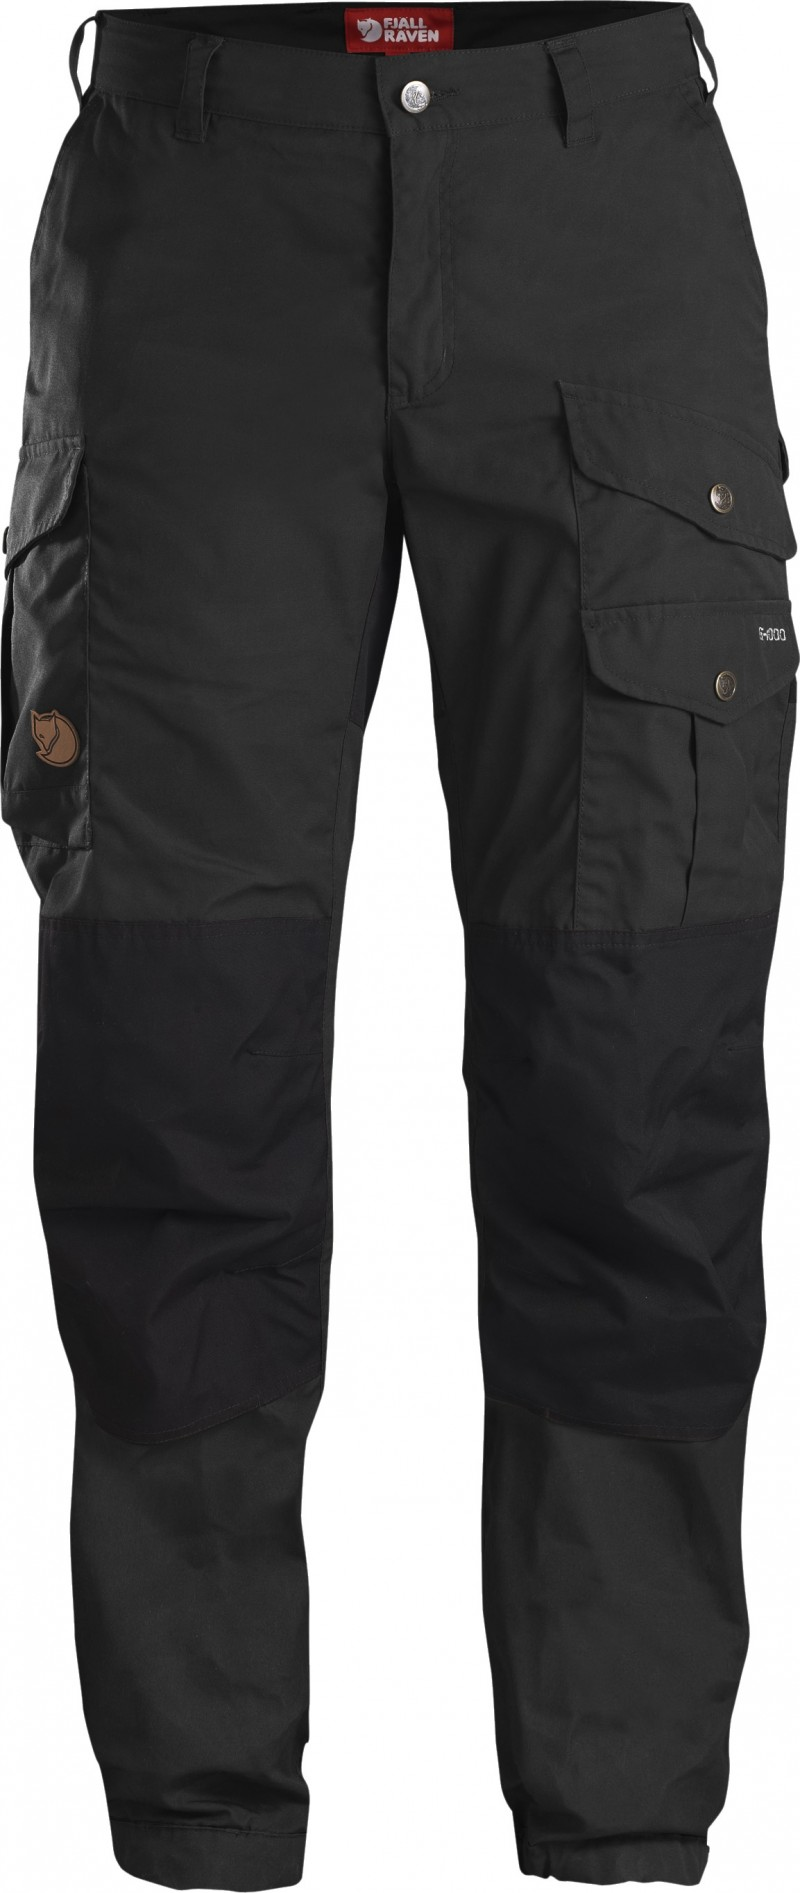 FjallRaven Vidda Pro Hydr.Trousers W. Dark Grey-30